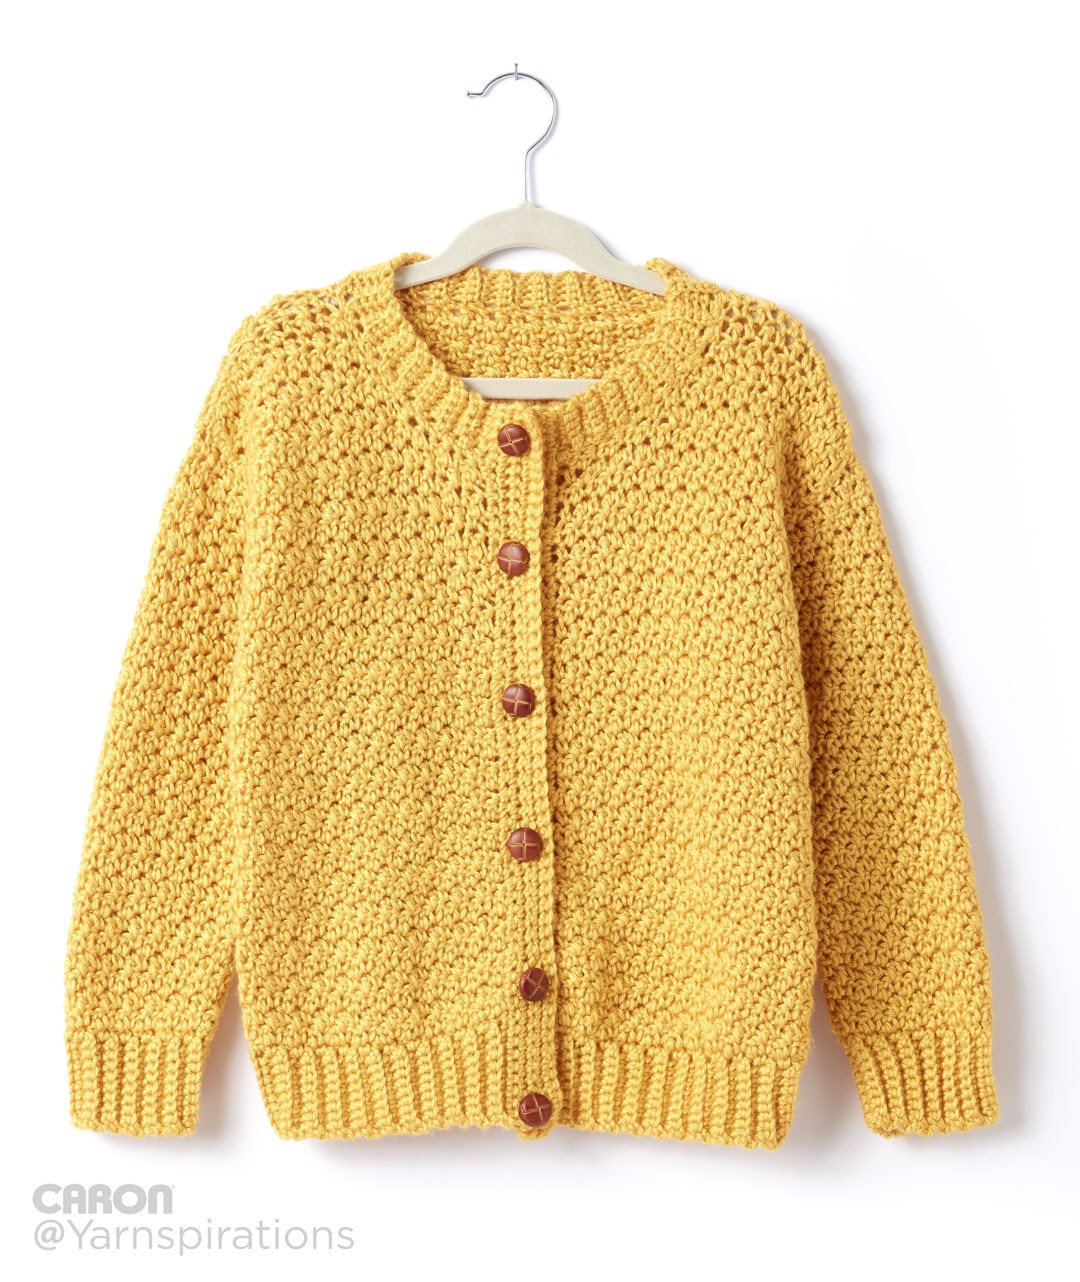 Child Size Crew Neck Cardigan